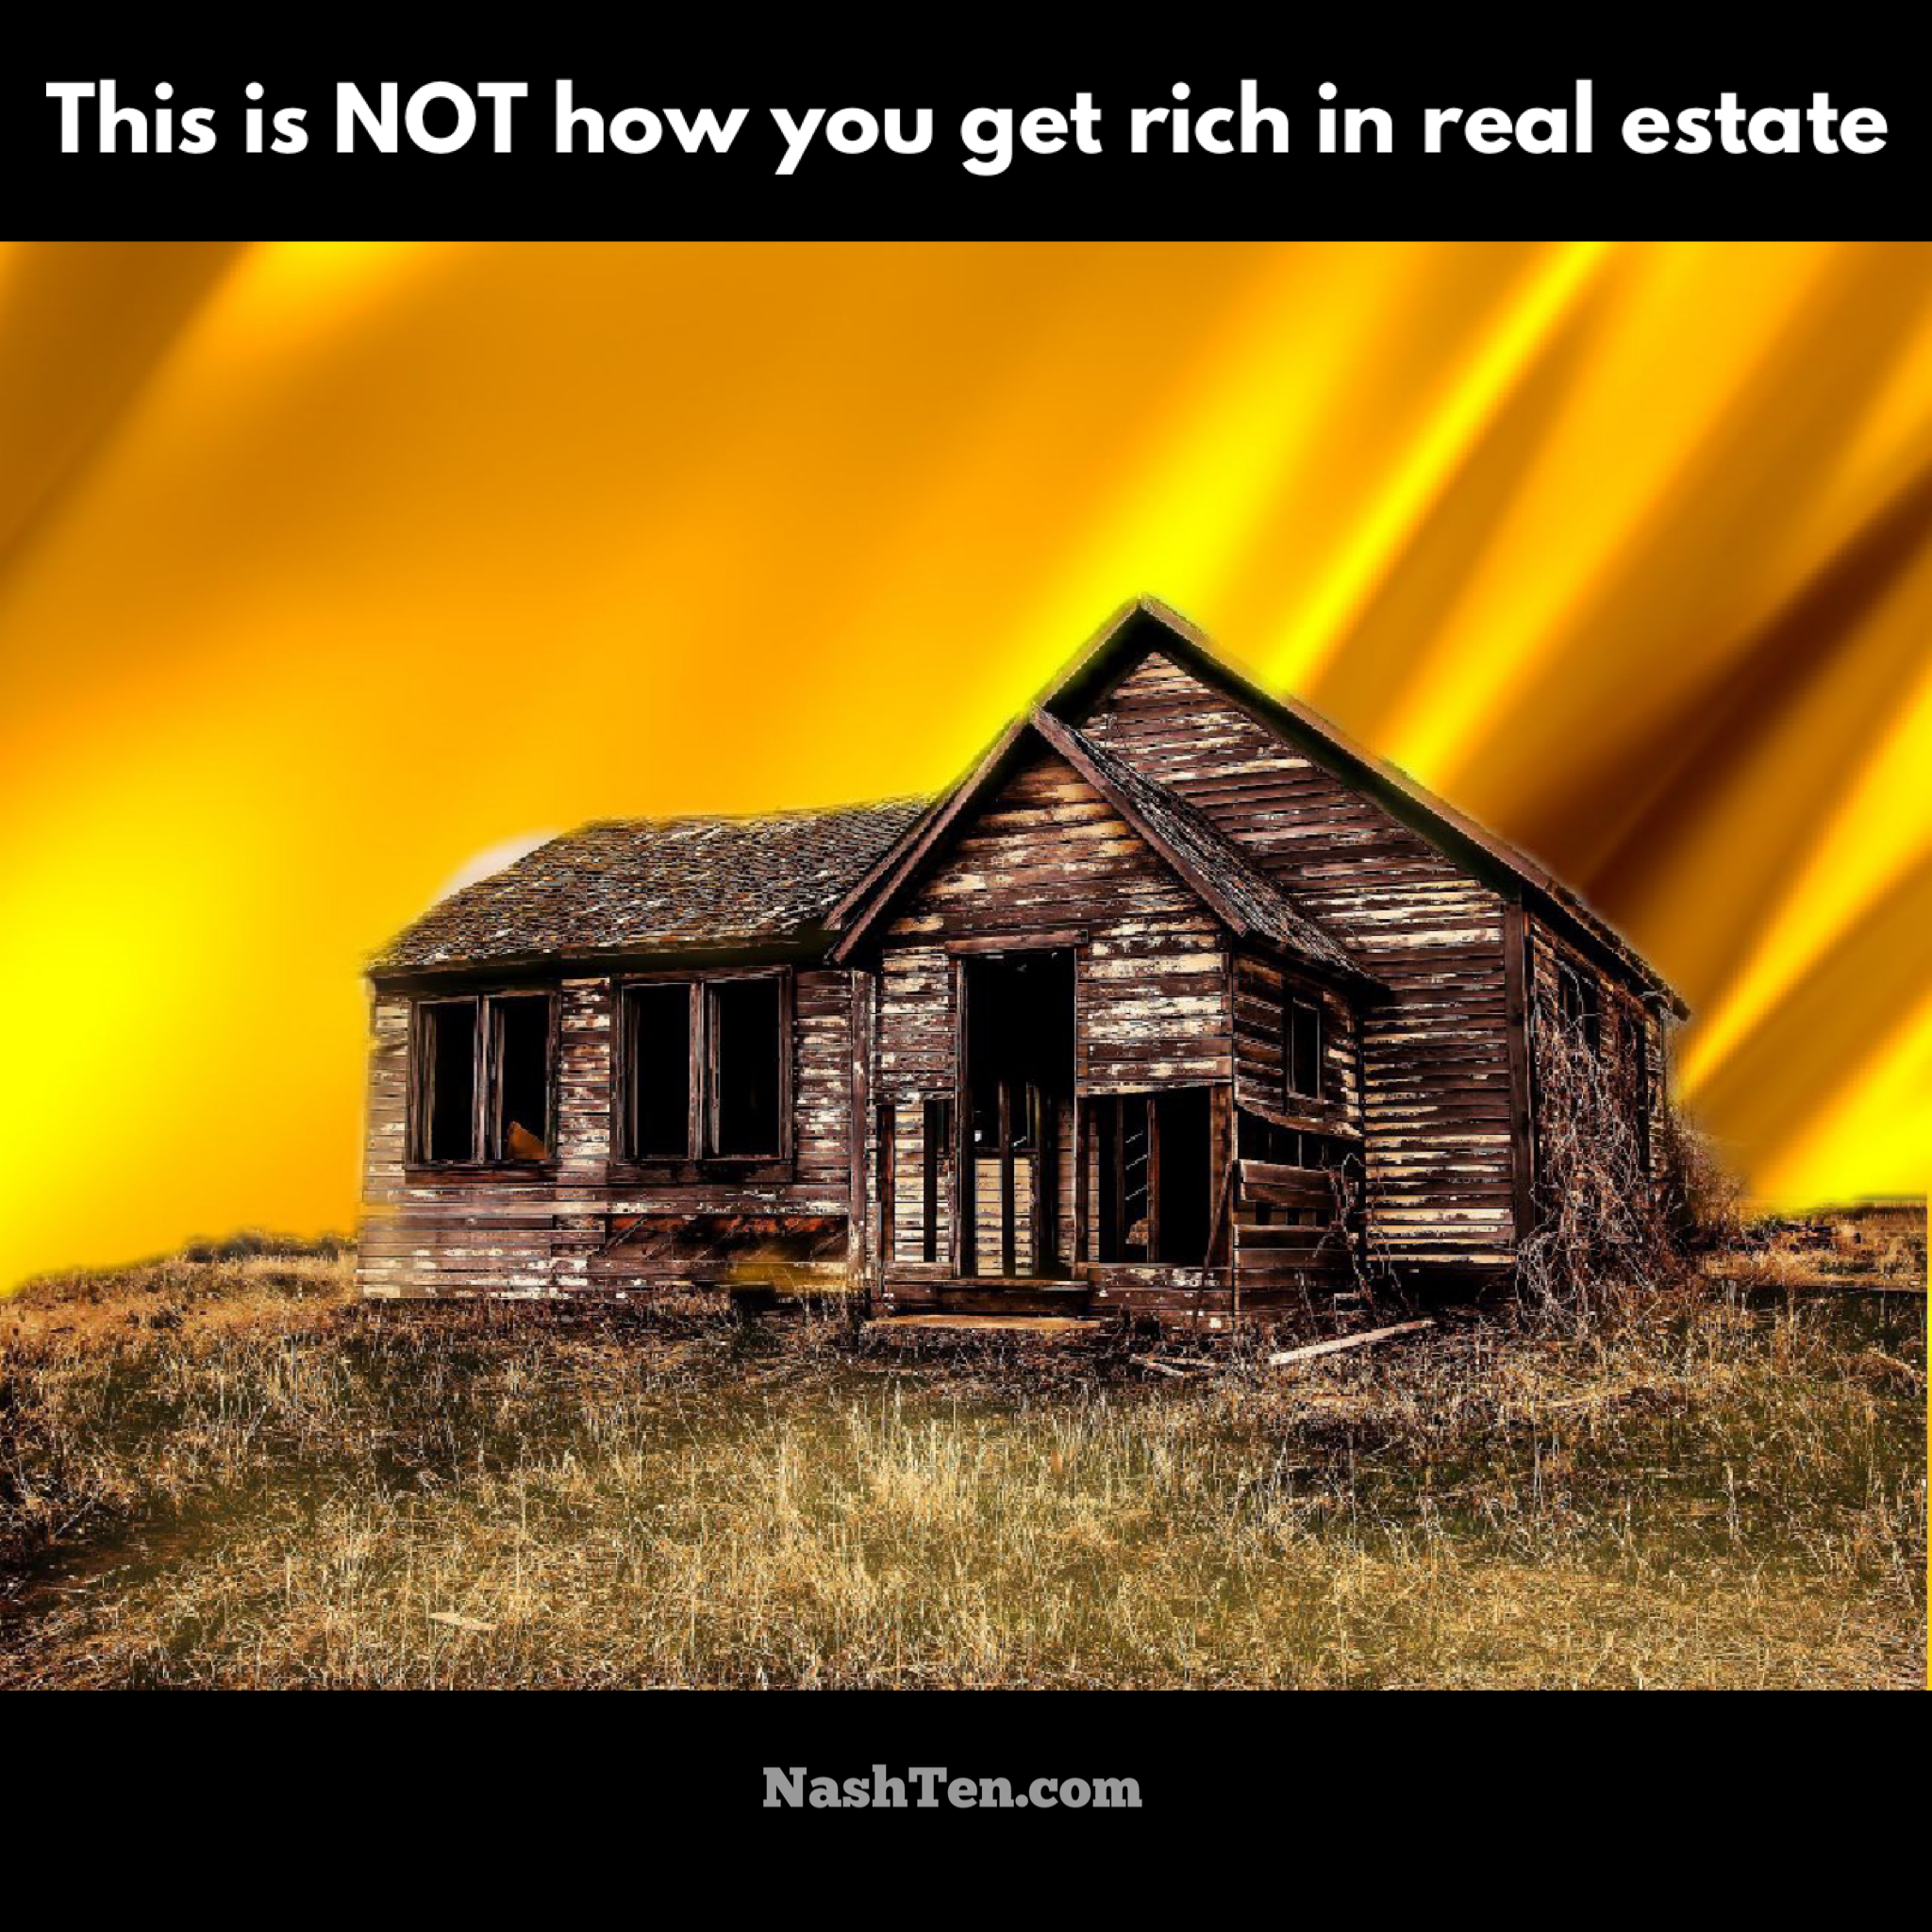 This is NOT how you get rich in real estate